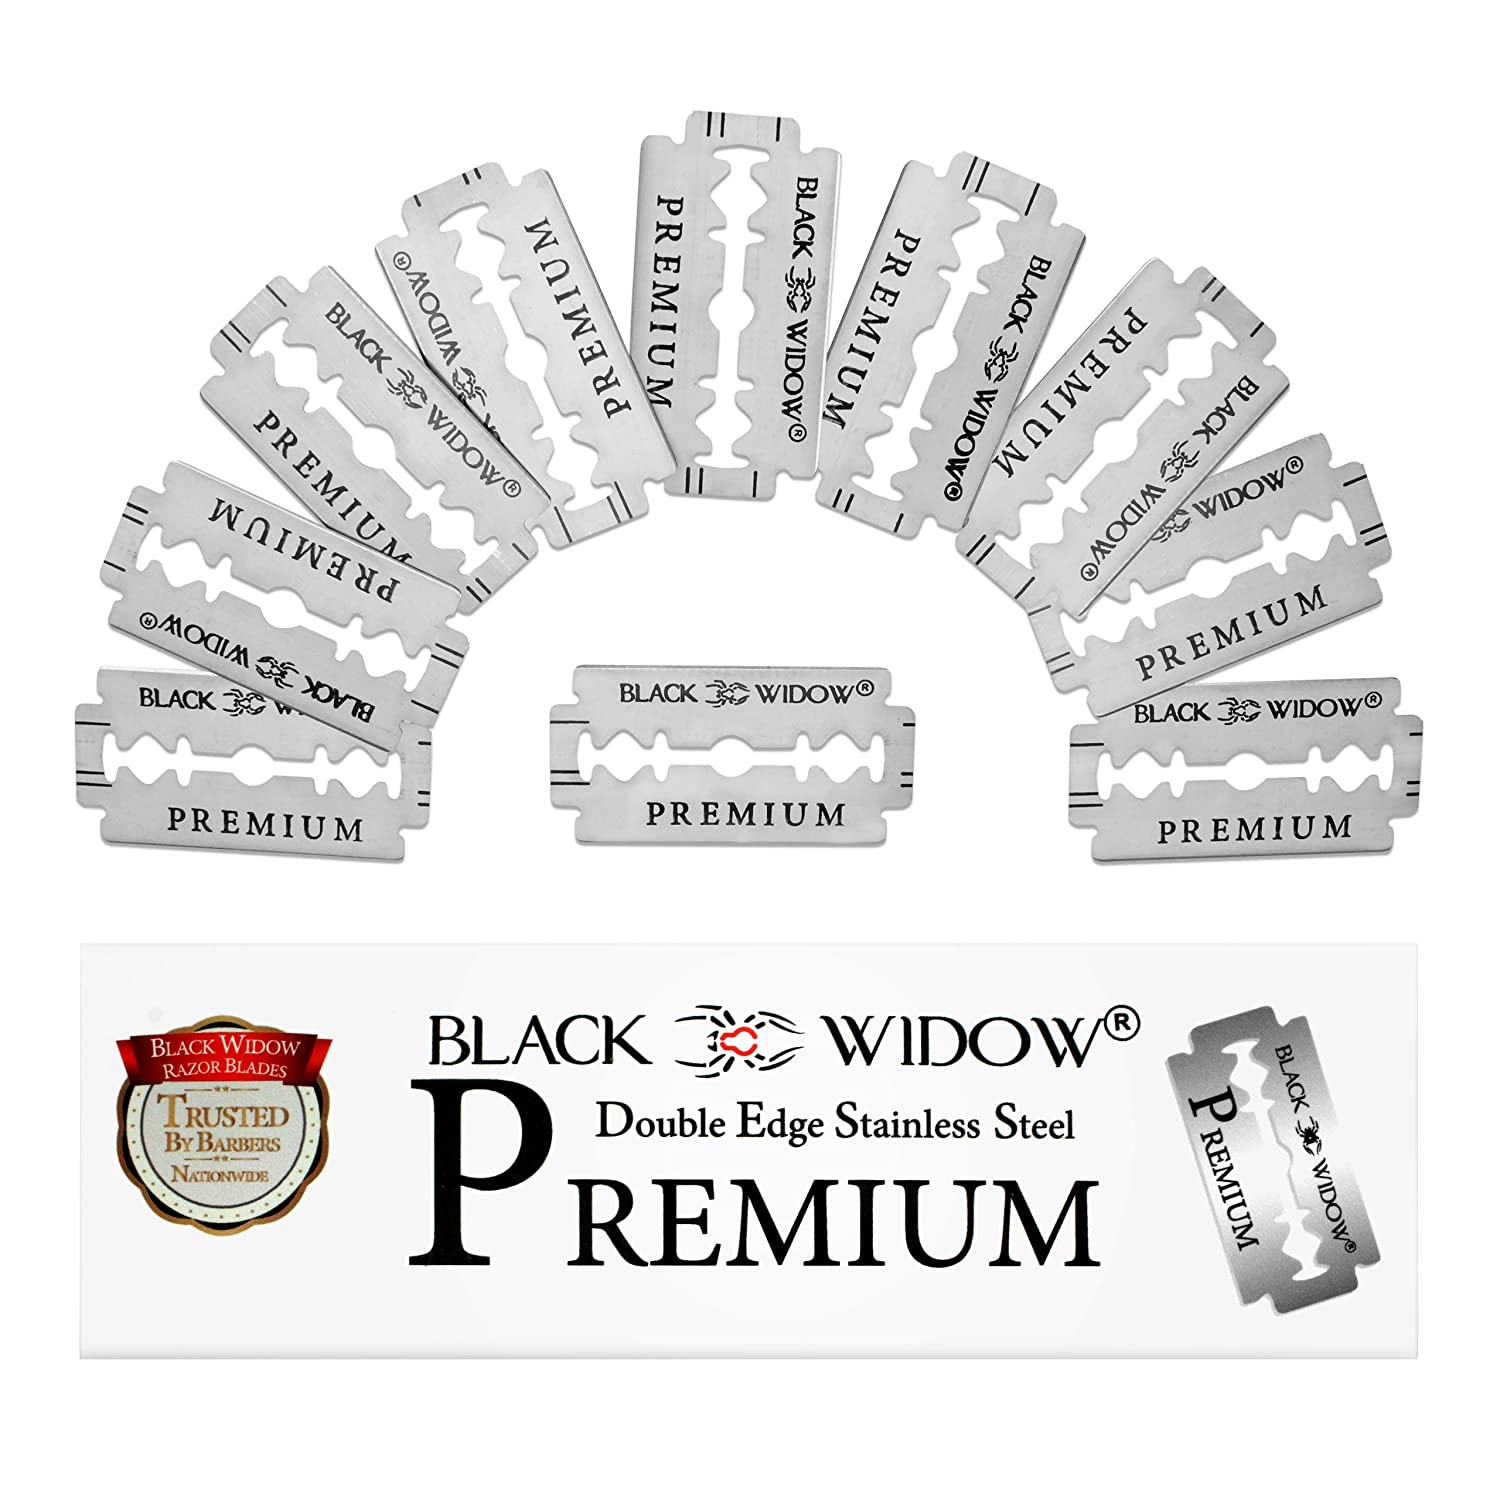 Black Widow Premium Double Edge Razor Blades - Swedish Steel Premium Razor Blades for Safety Razors and Straight Edge Razors - (100 Count)